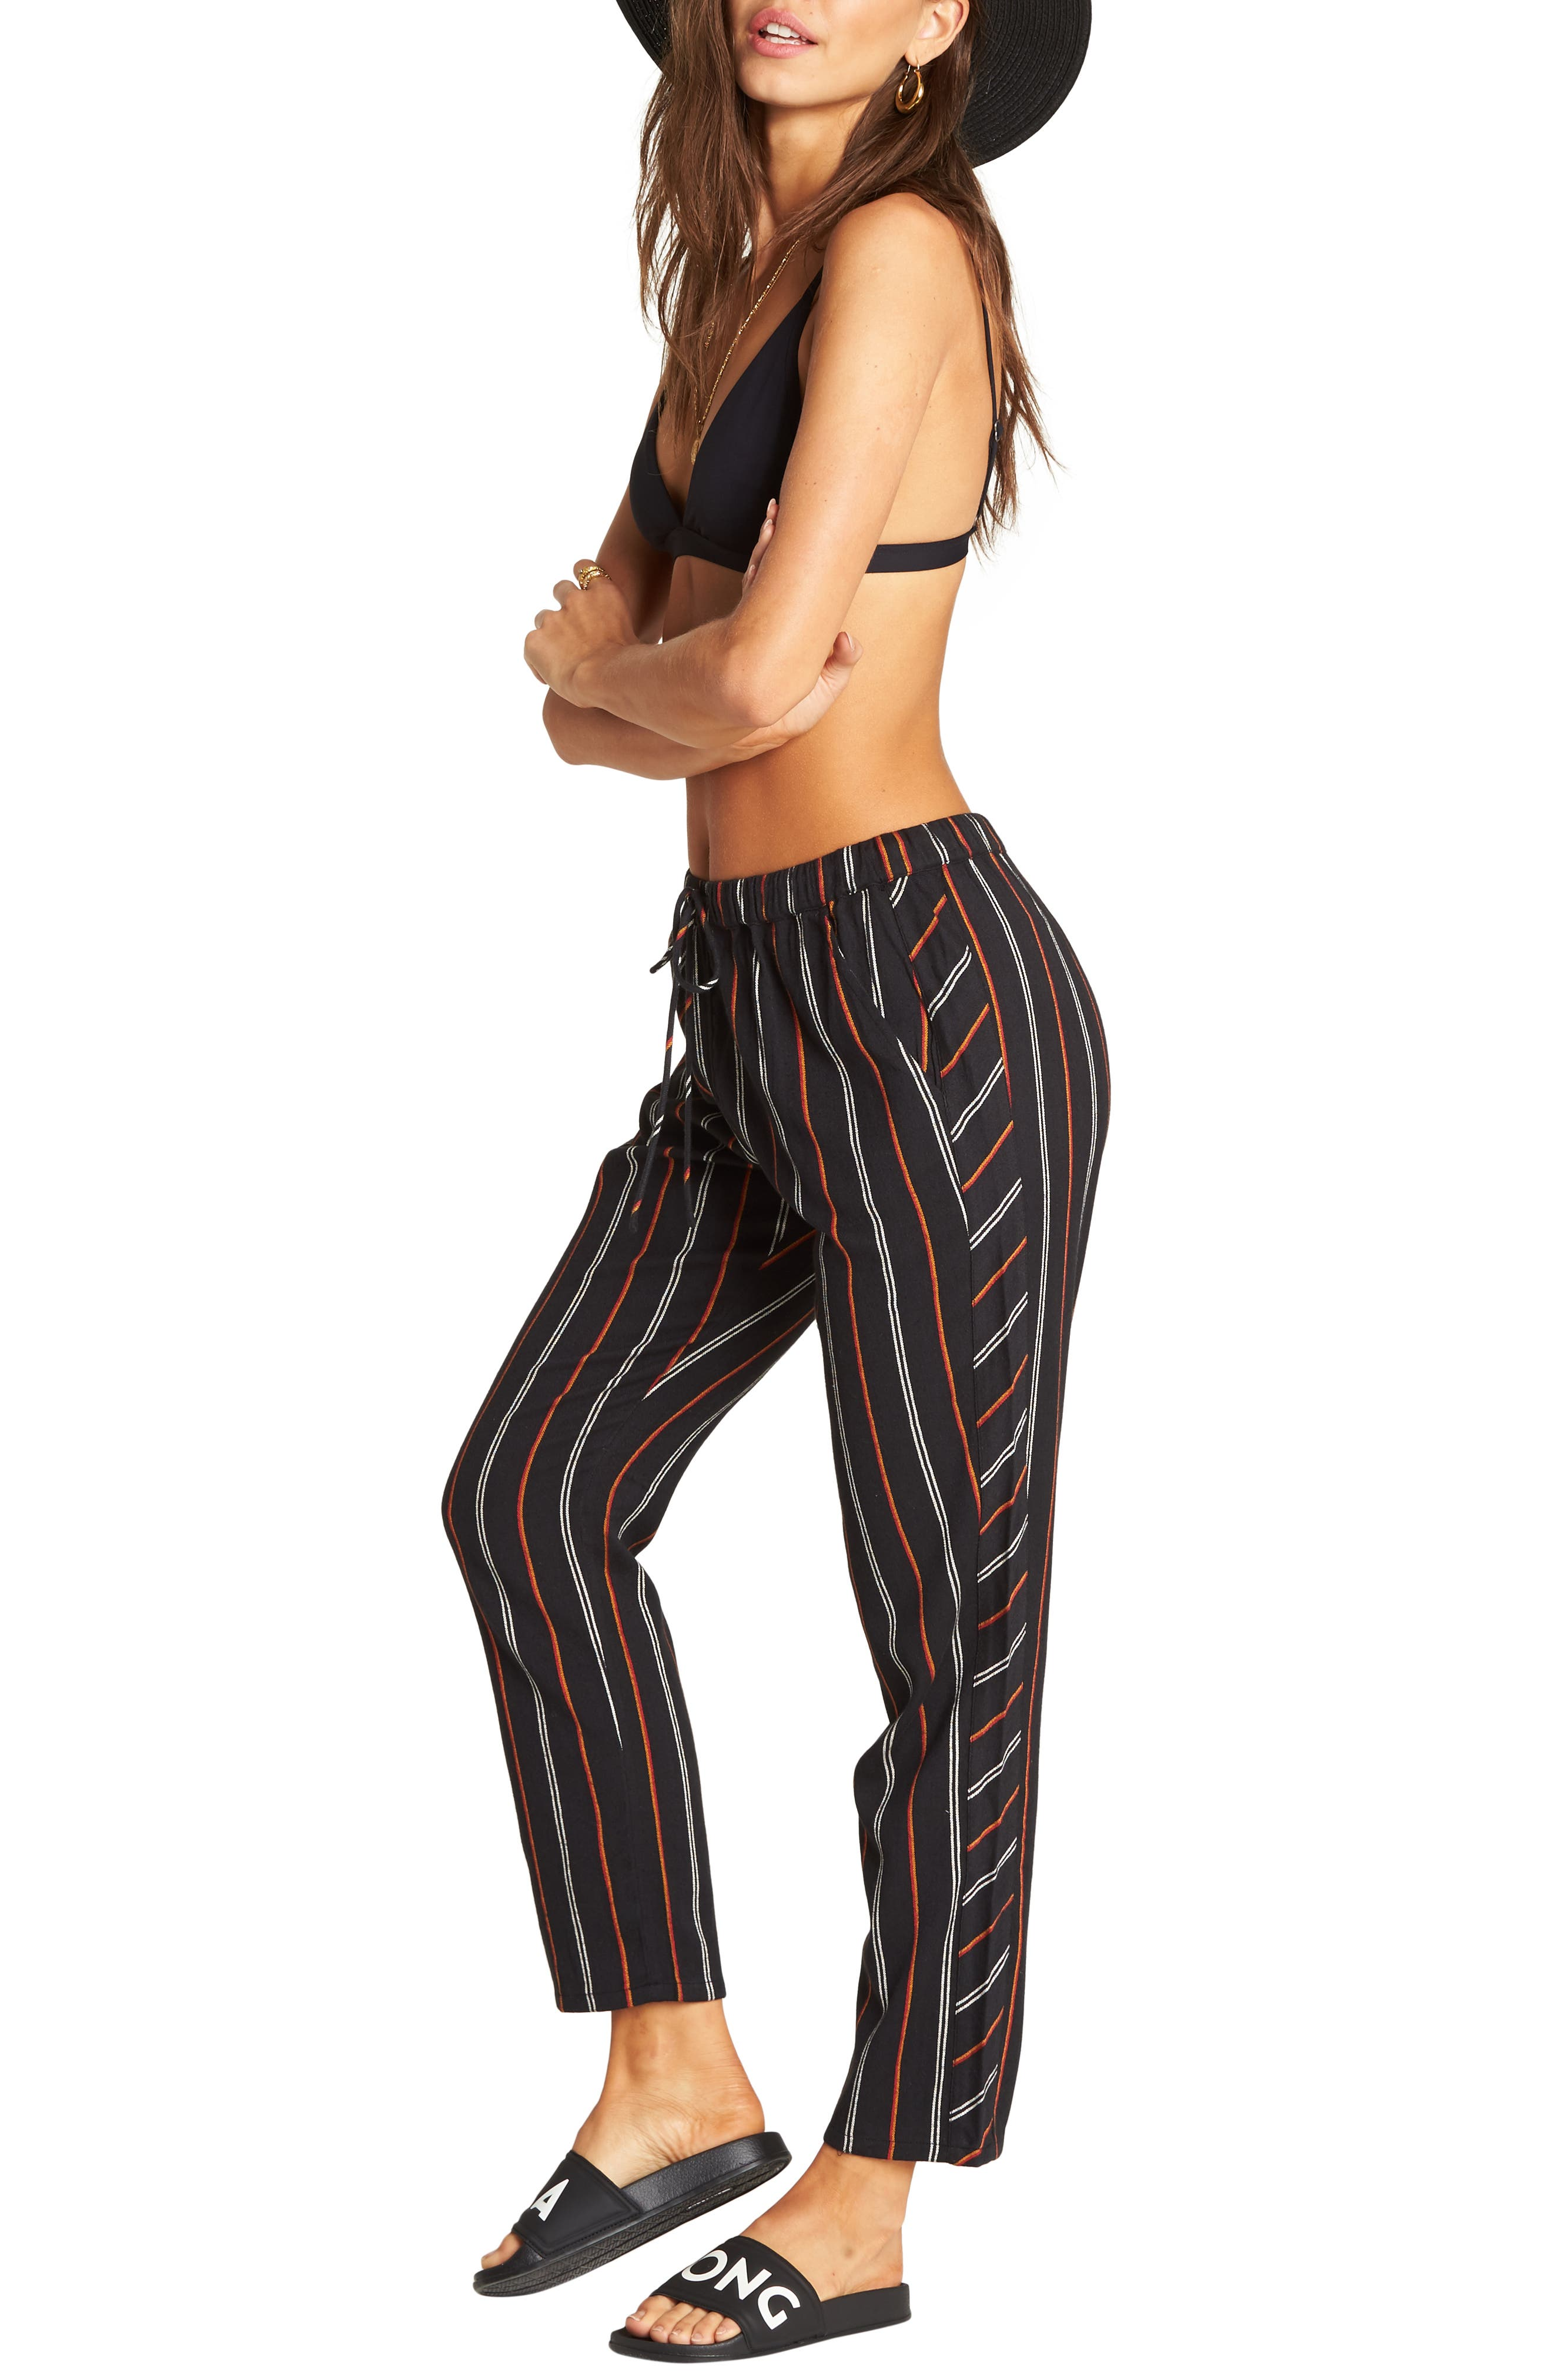 So Pro Pinstripe Pants,                             Main thumbnail 1, color,                             BLACK